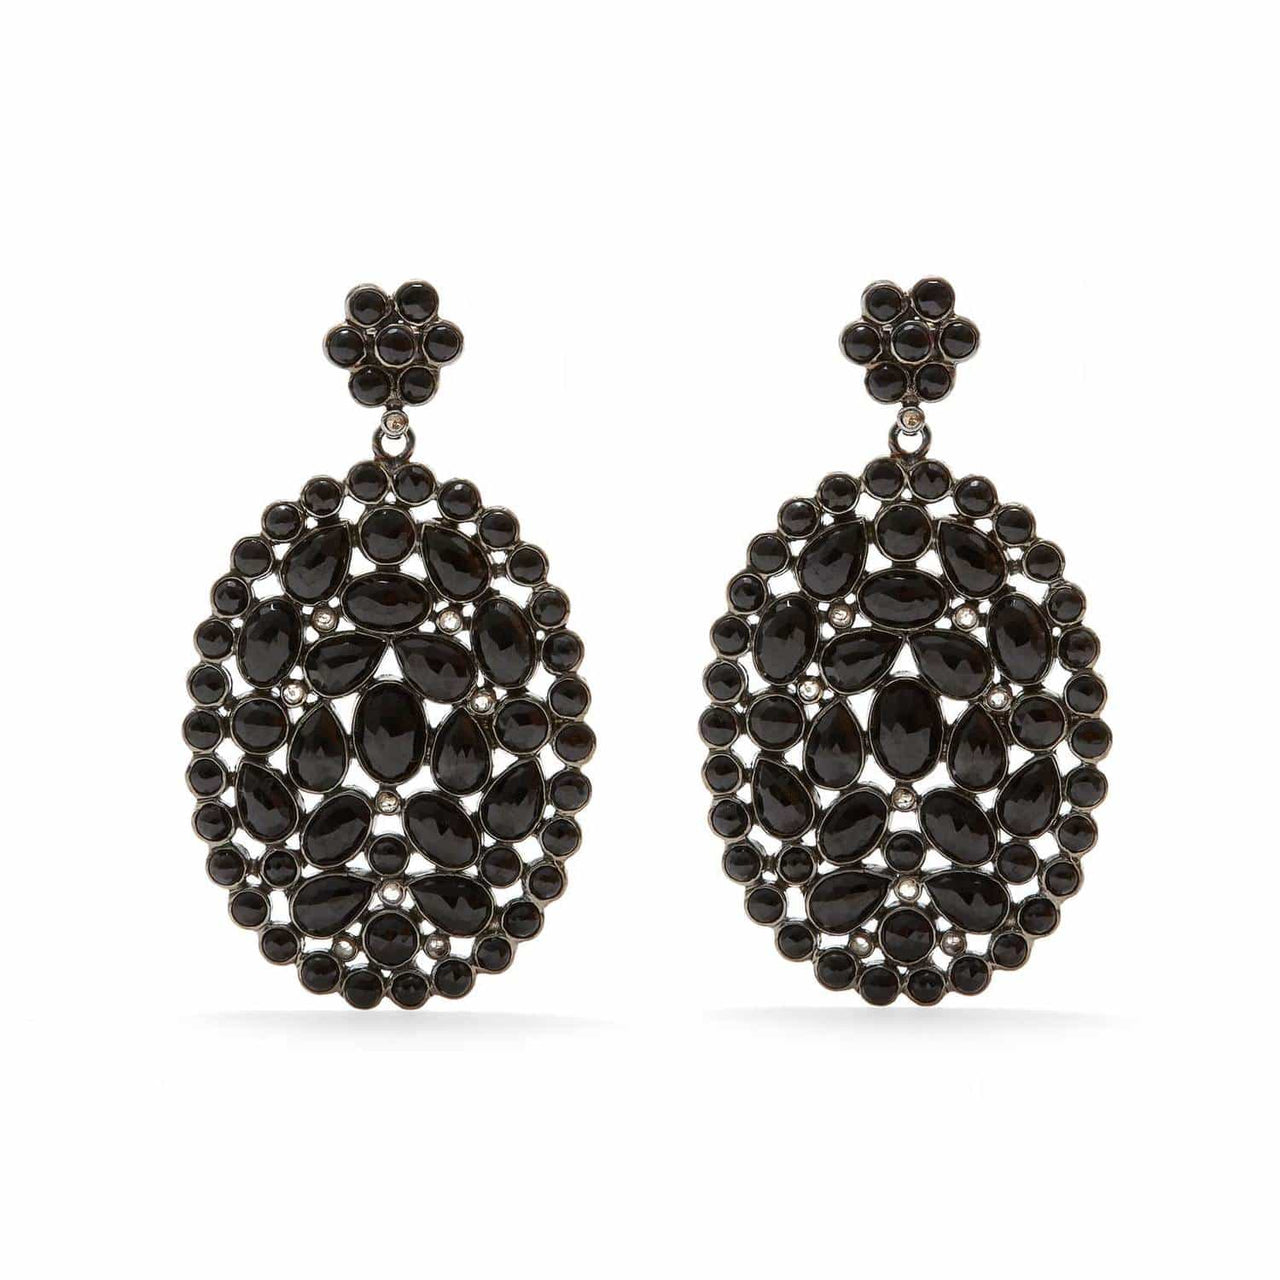 Jaipur Atelier 'DIAPHANOUS' BLACK SPINEL & DIAMOND OVALS